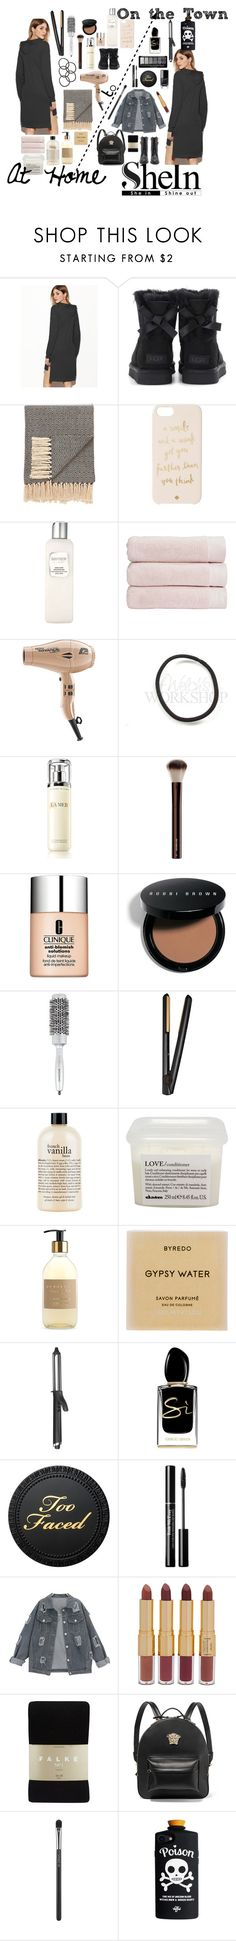 """""""SheIn Hoodie Contest"""" by ittybittyrsunshine ❤ liked on Polyvore featuring UGG, Jaipur, Kate Spade, Laura Mercier, Christy, La Mer, Clinique, Bobbi Brown Cosmetics, Bio Ionic and GHD"""